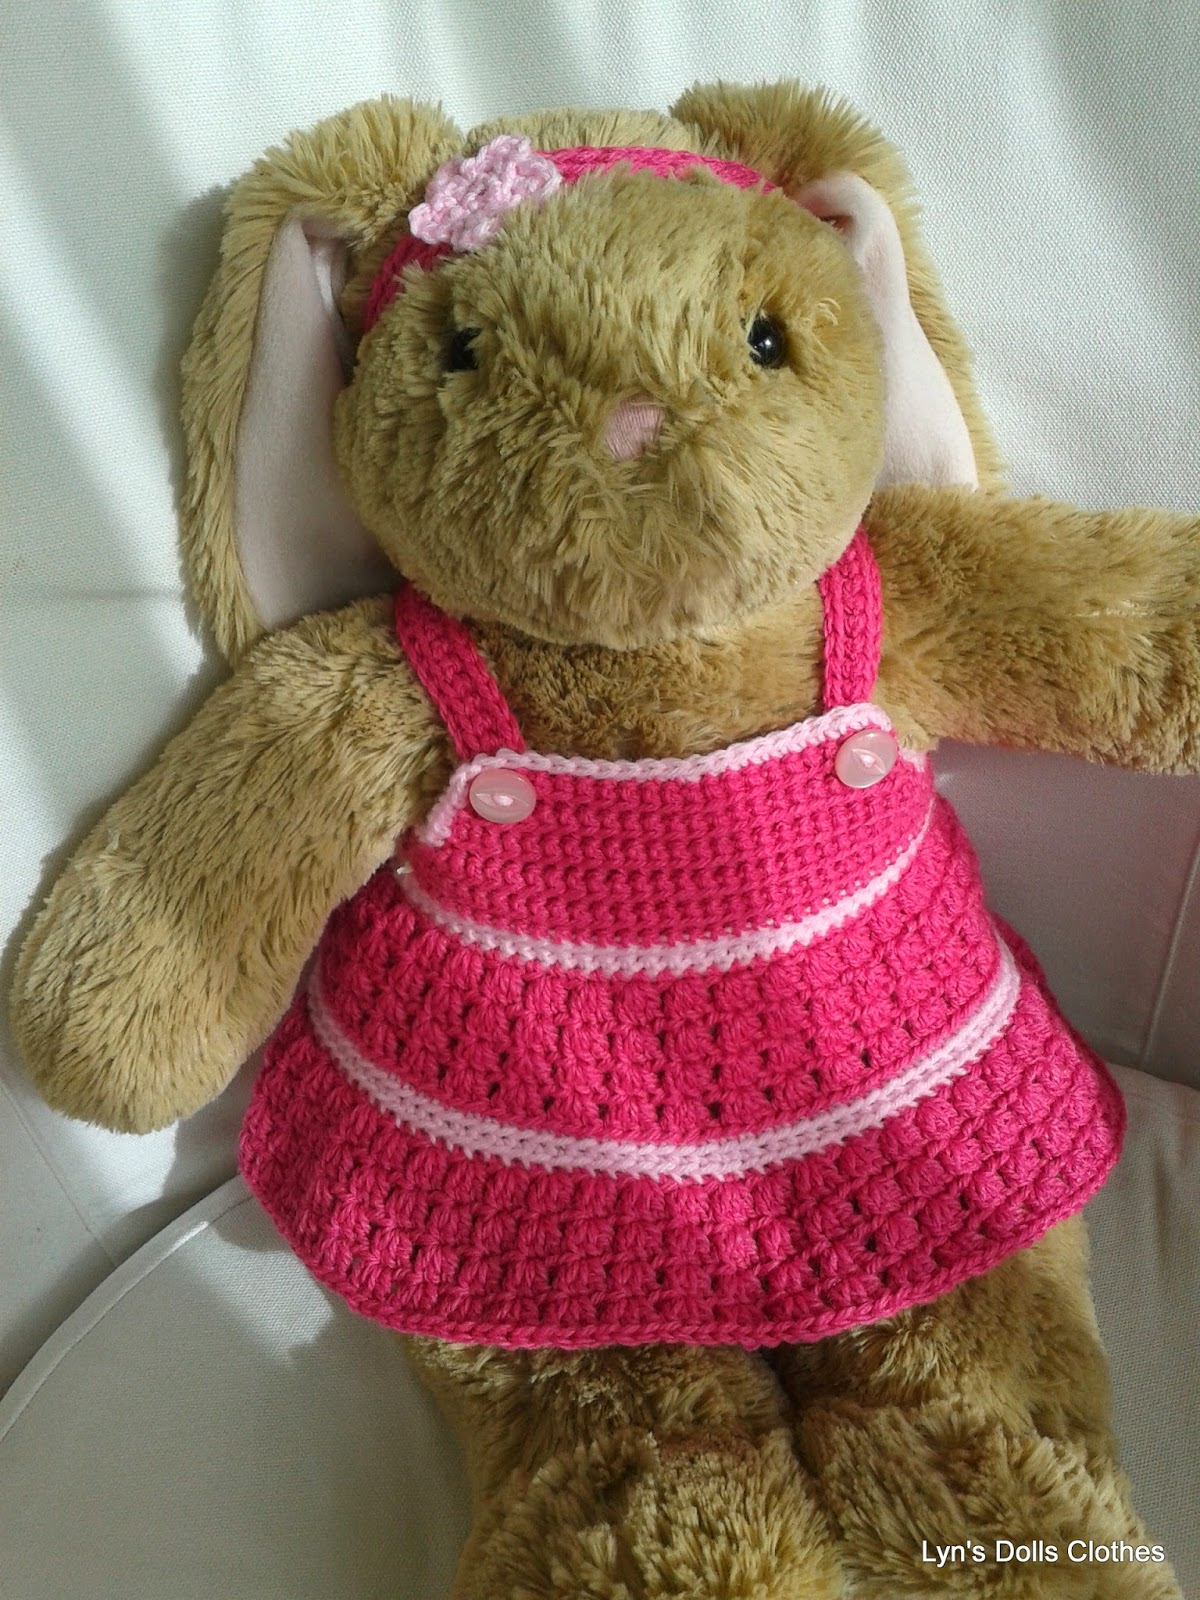 Free Crochet Patterns For Teddy Bear Sweaters : Lyns Dolls Clothes: Teddy bear crochet dress and headband